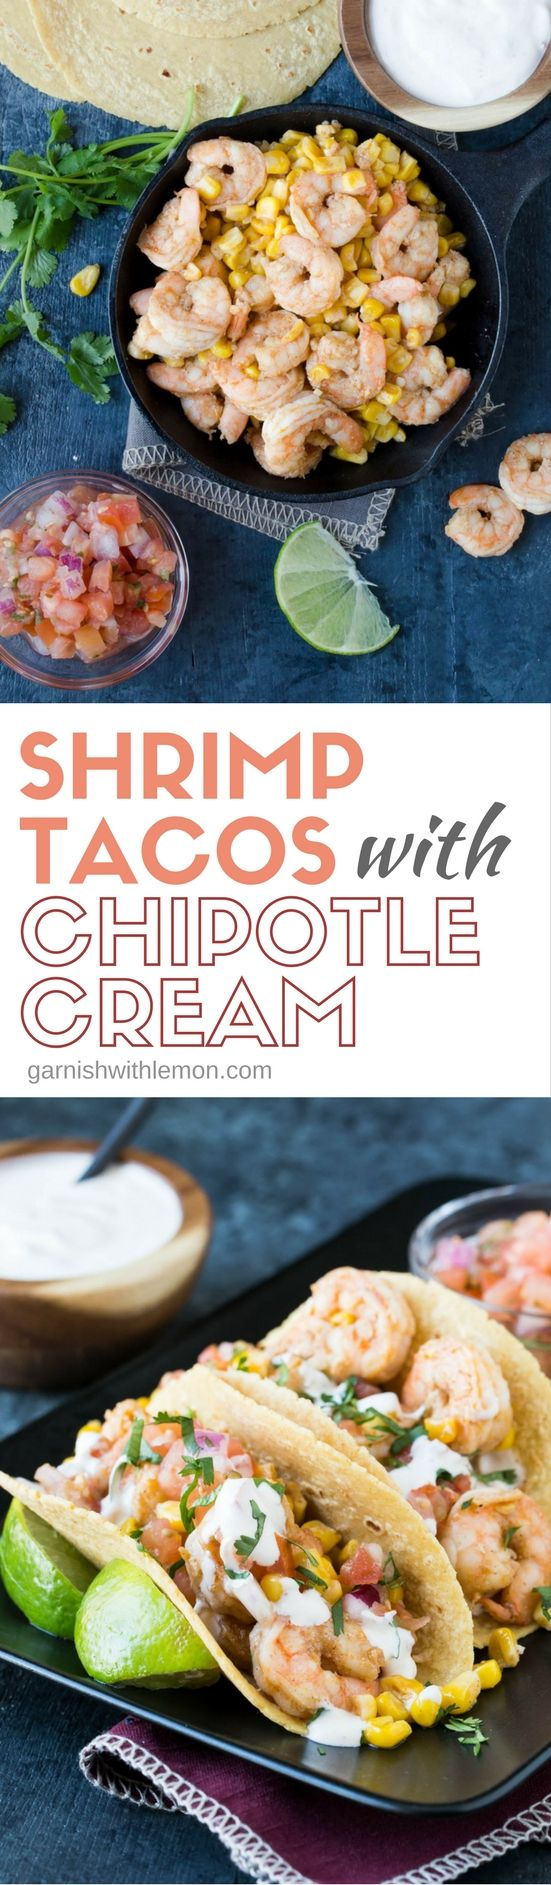 Hosting a fiesta? These Shrimp Tacos with Chipotle Cream are a crowd favorite and ready to serve in less than 30 minutes.